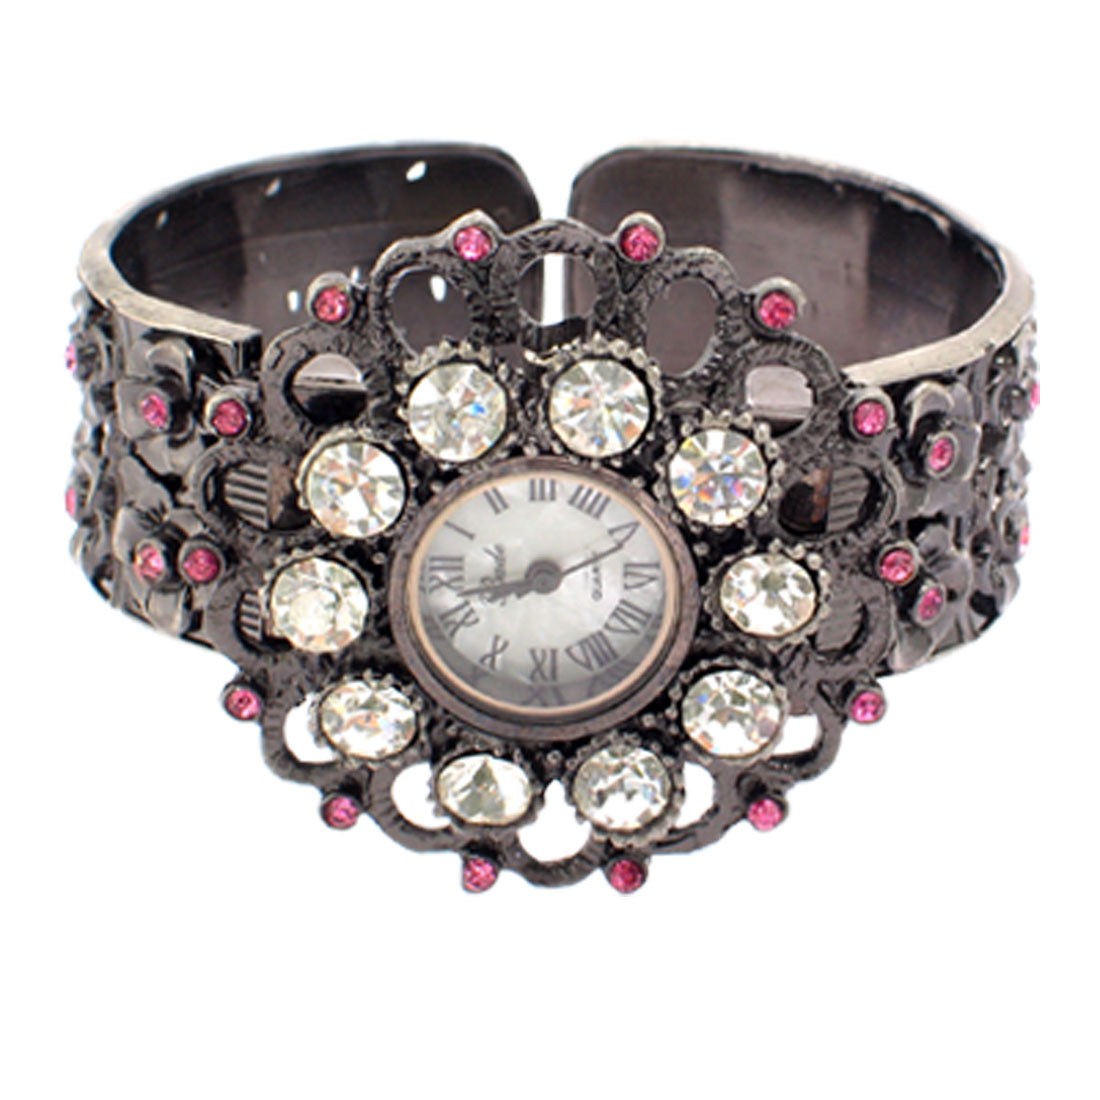 Clear Pink Watch Crystal Beads Sunflower Shape Sooty Eoasj